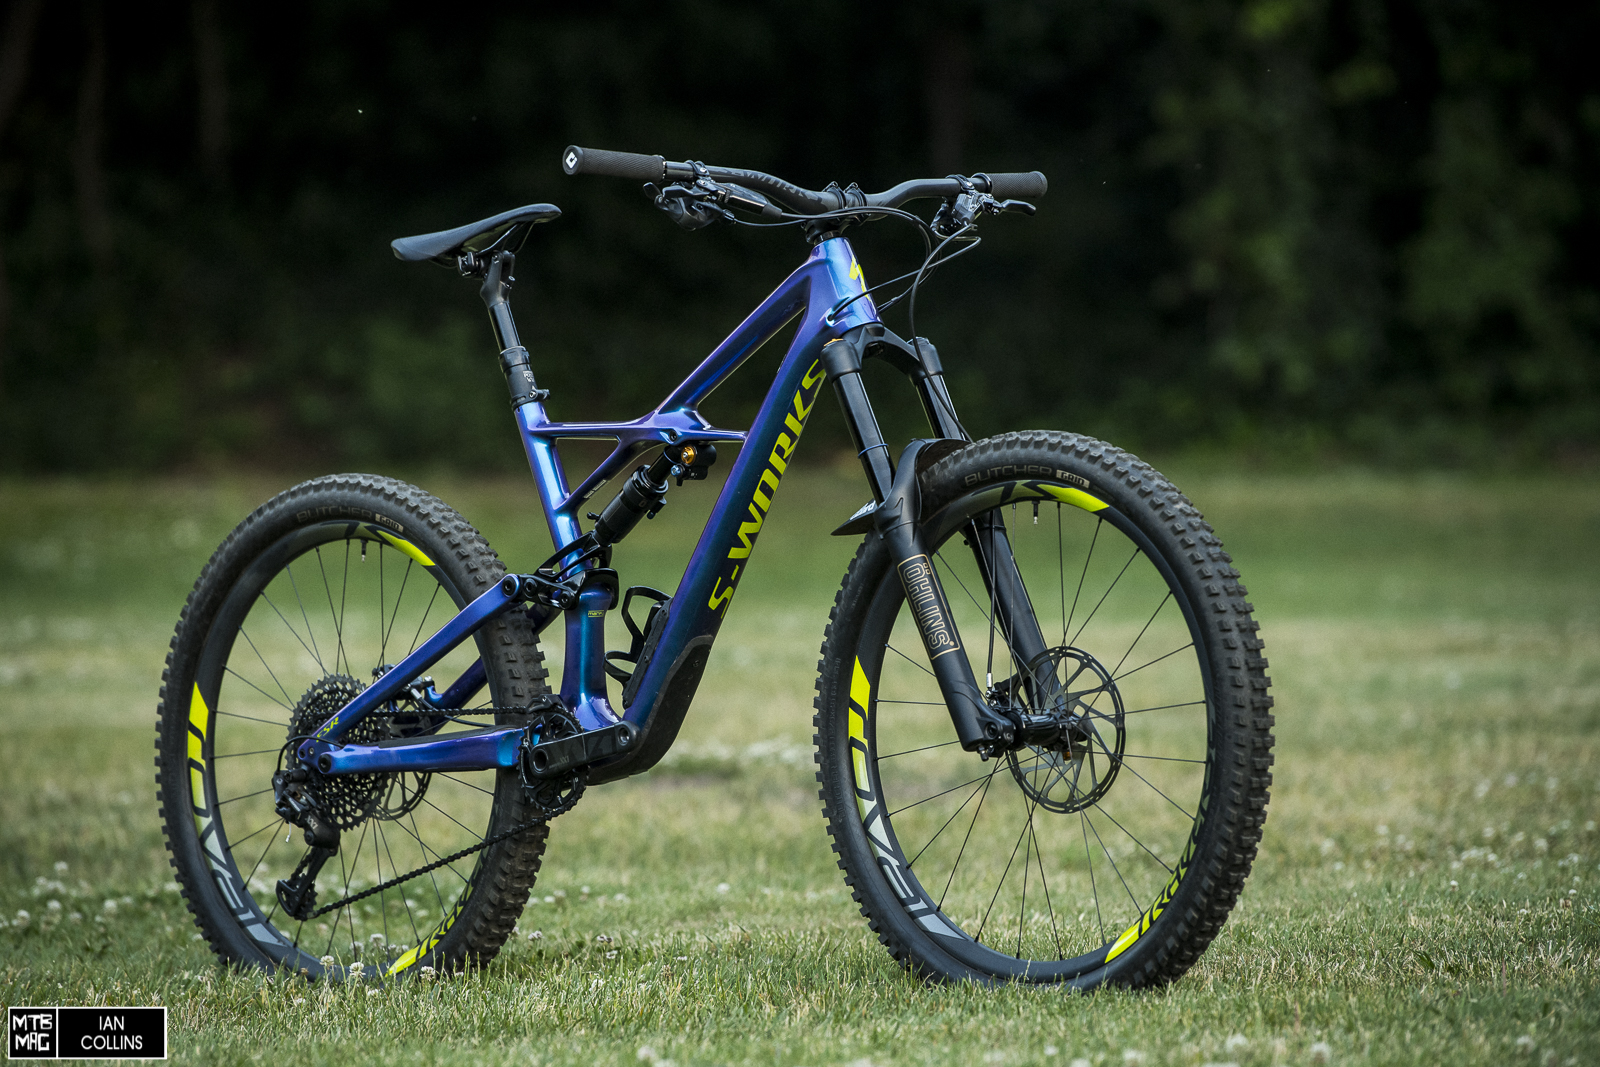 MTB-MAG COM - Mountain Bike Magazine | [Tested] Specialized S-Works